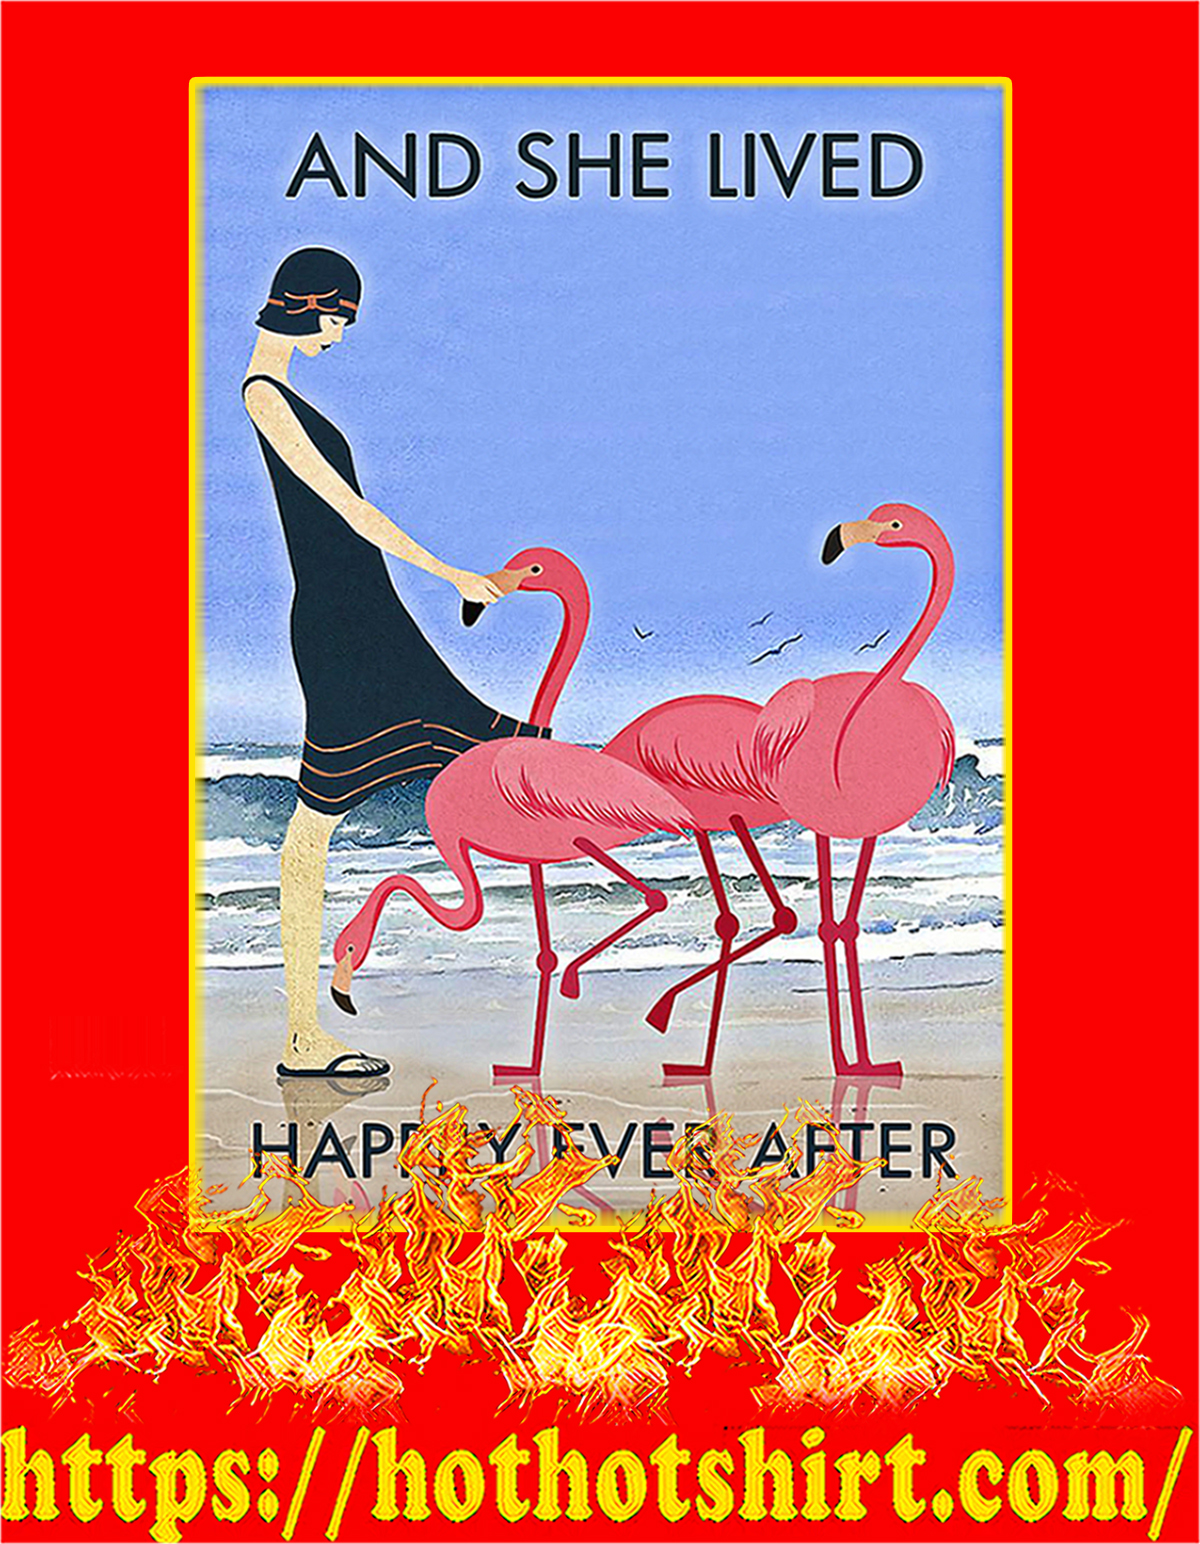 Flamingo And she lived happily ever after poster